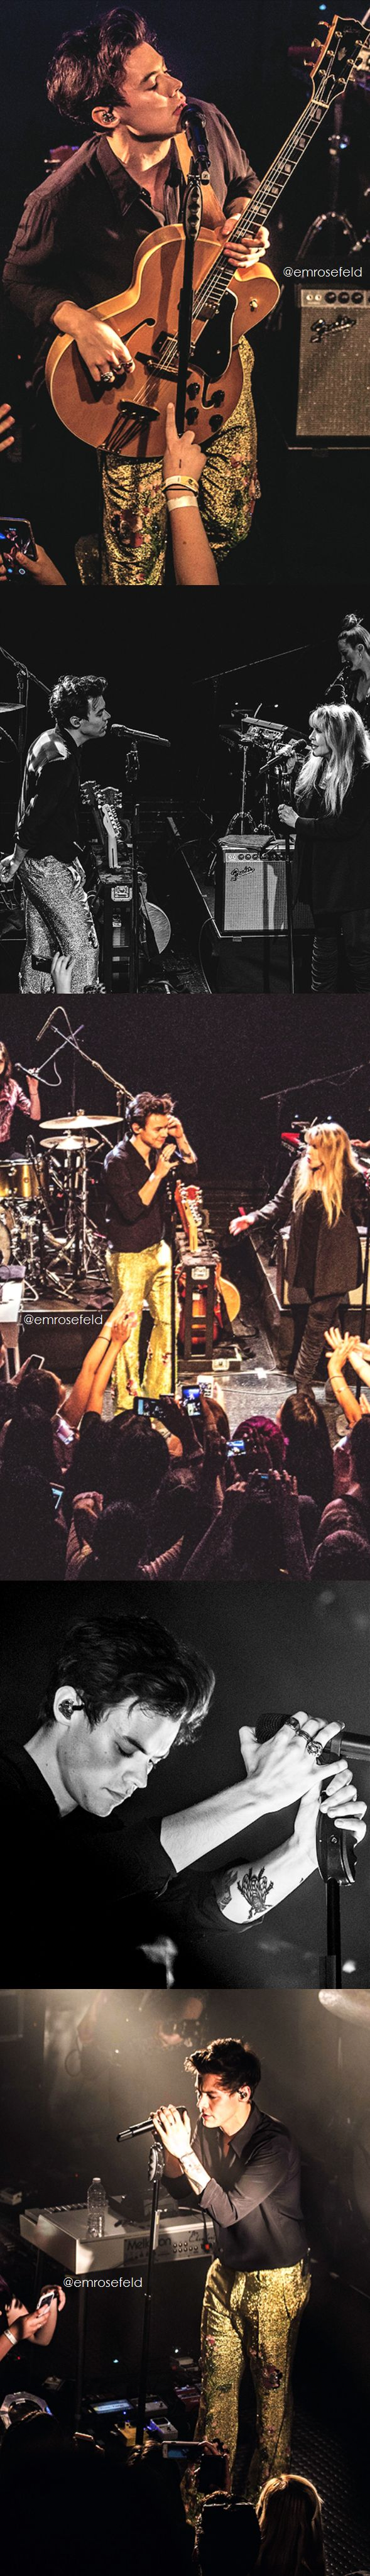 Harry Styles and Stevie Nicks | at the Troubadour 5.19.17 | emrosefeld |